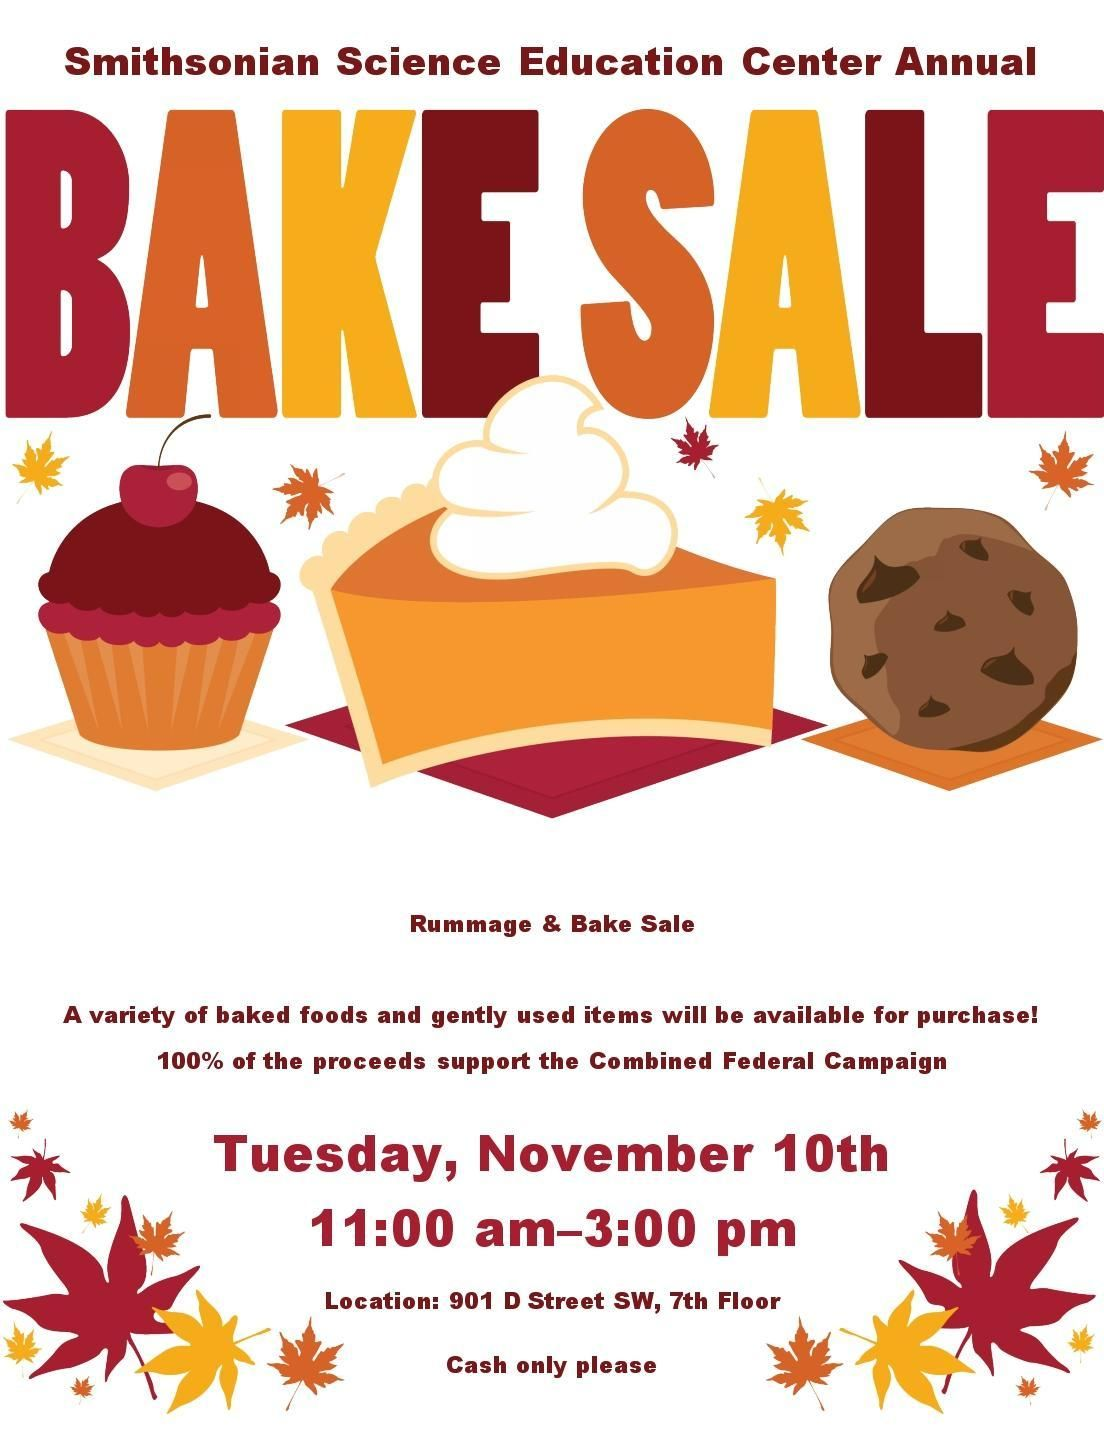 bake sale flyers free flyer designs - HD 1104×1449